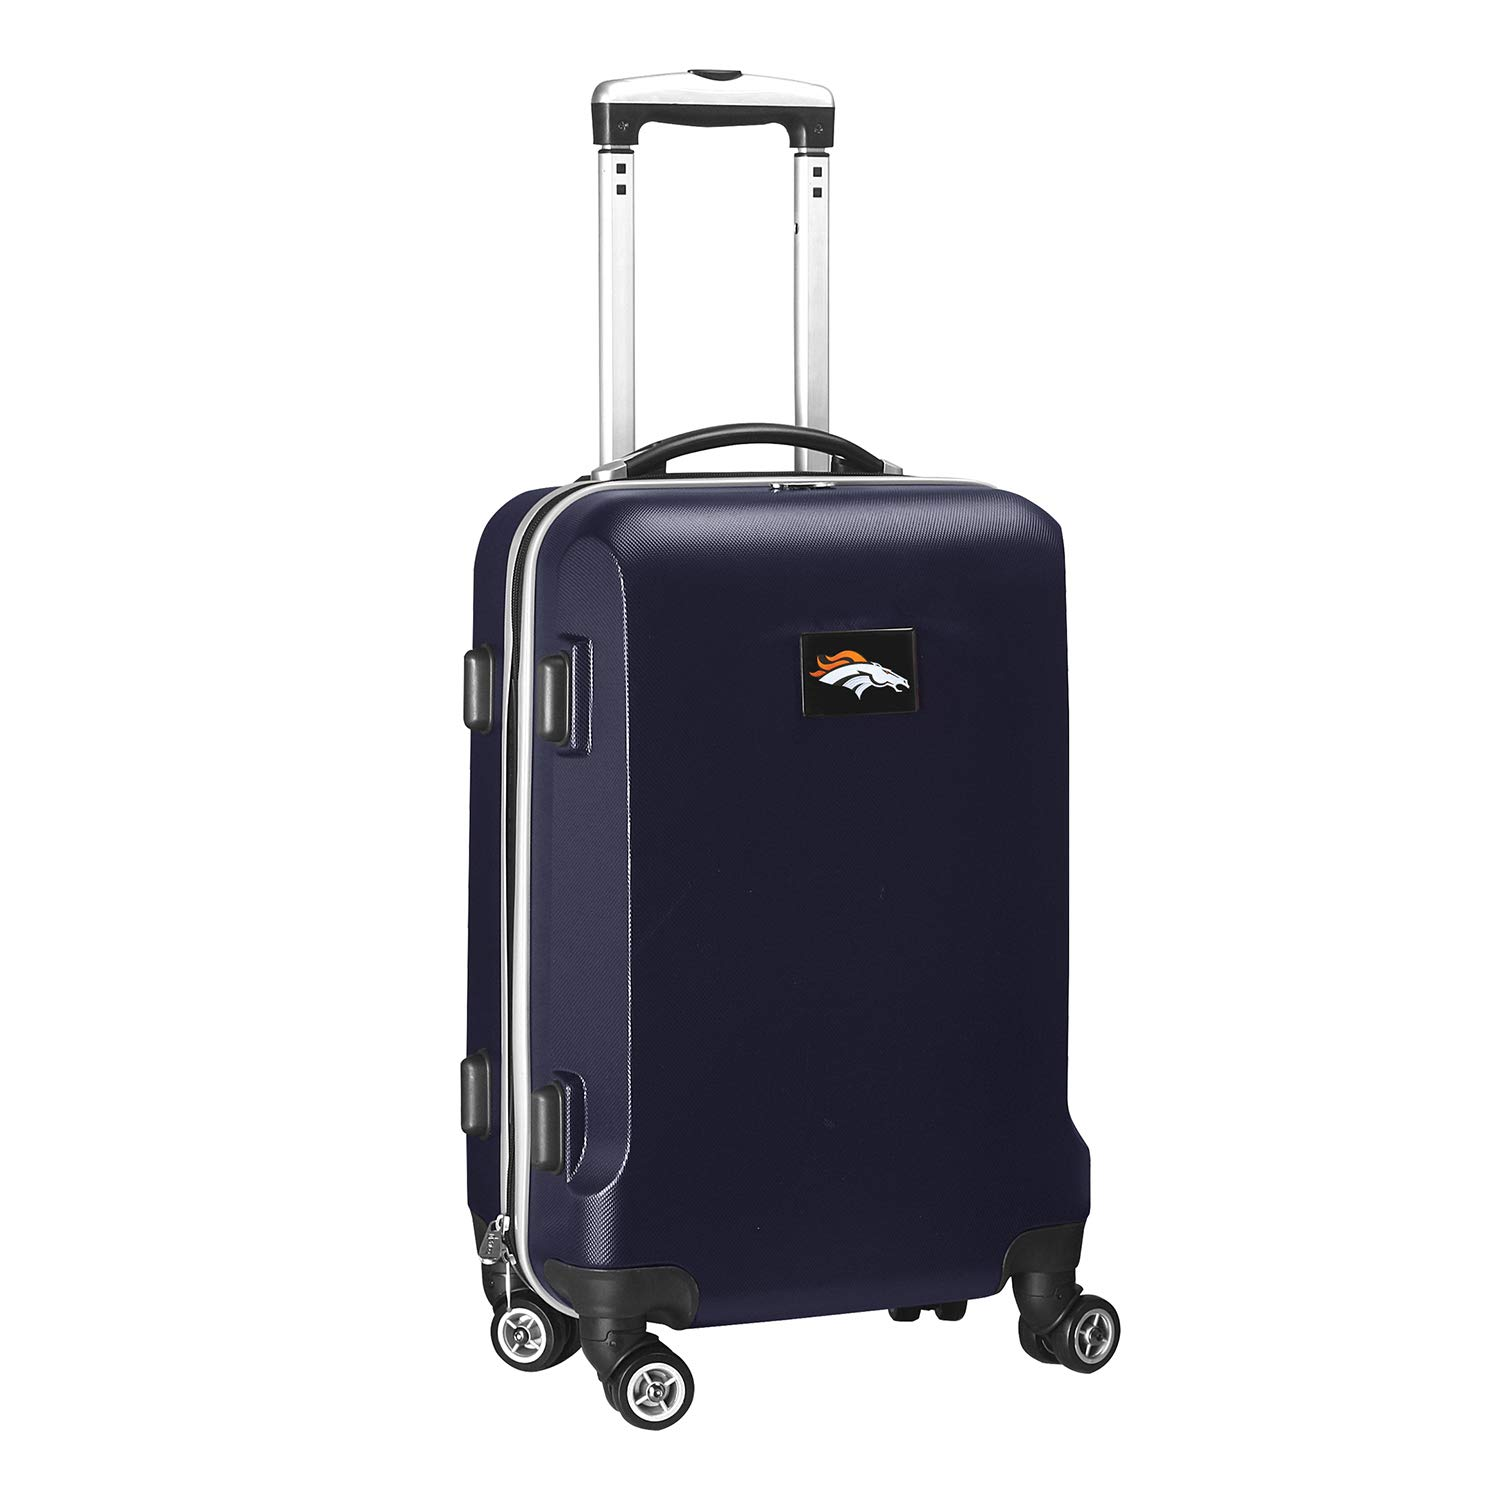 NFL Denver Broncos Carry-On Hardcase Luggage Spinner, Navy by Denco (Image #1)